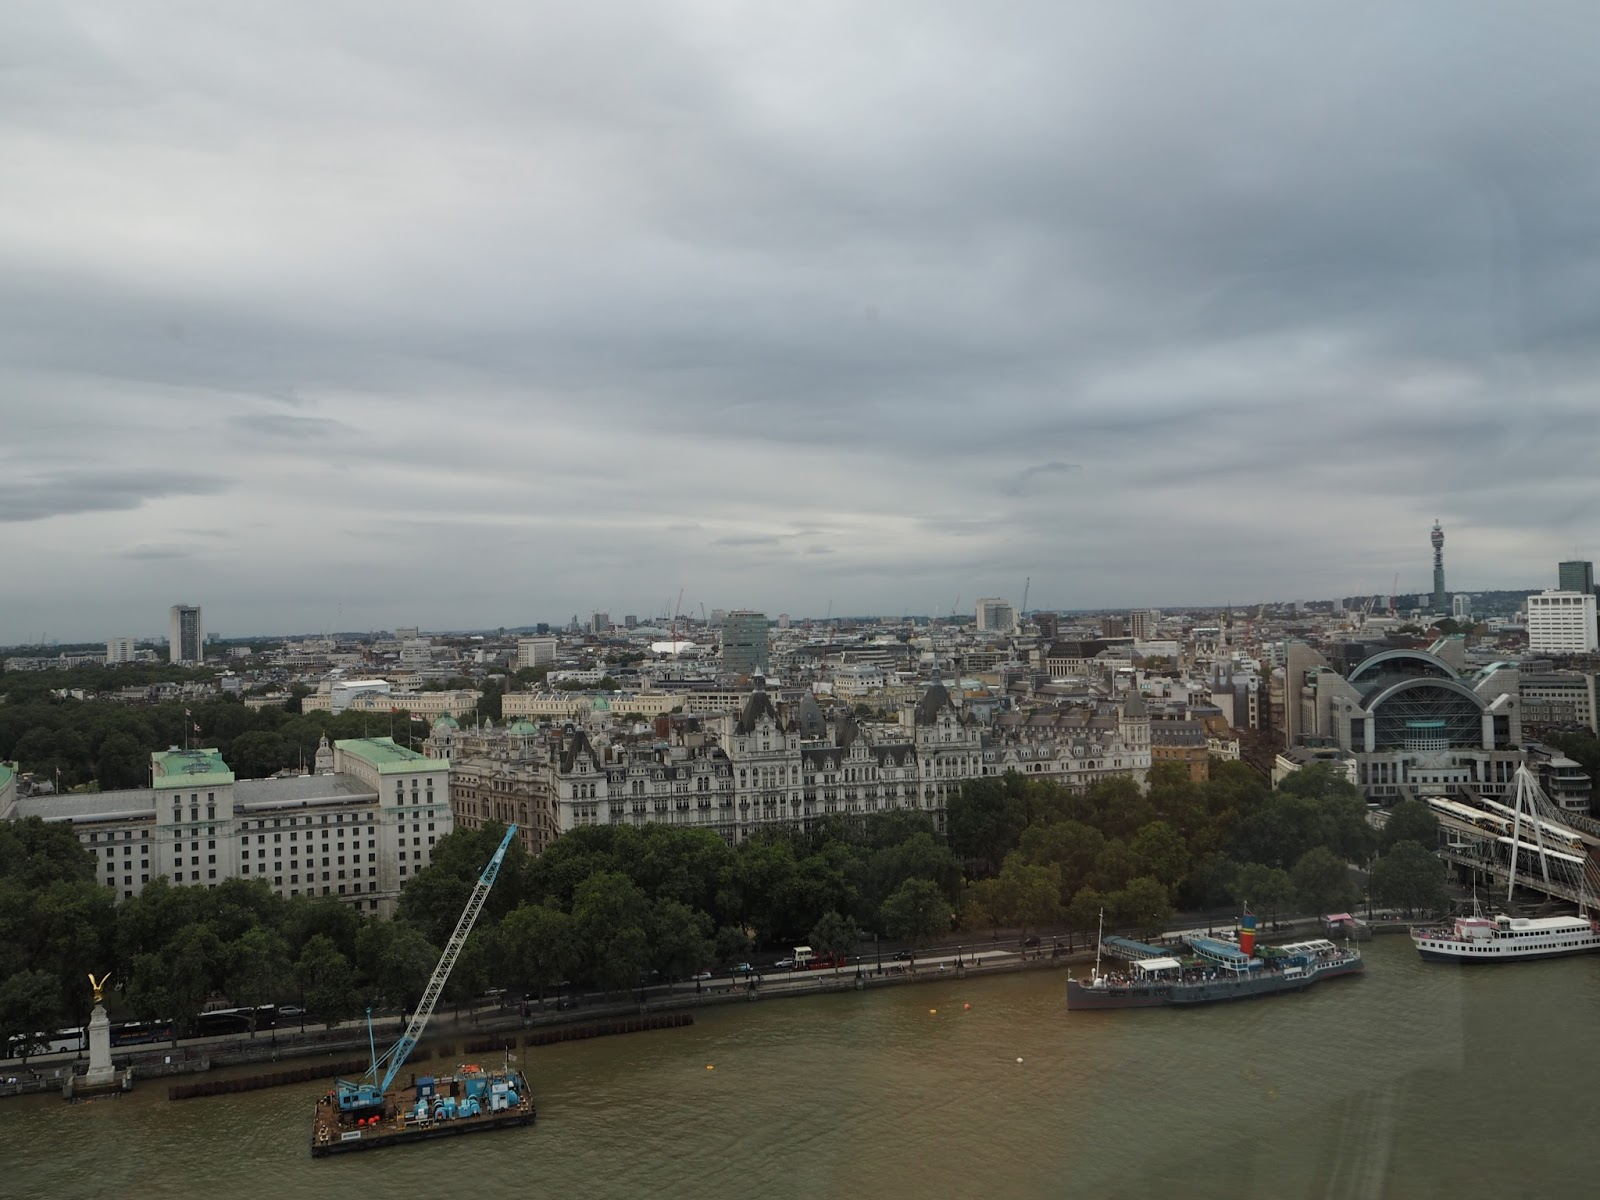 London as viewed from The London Eye